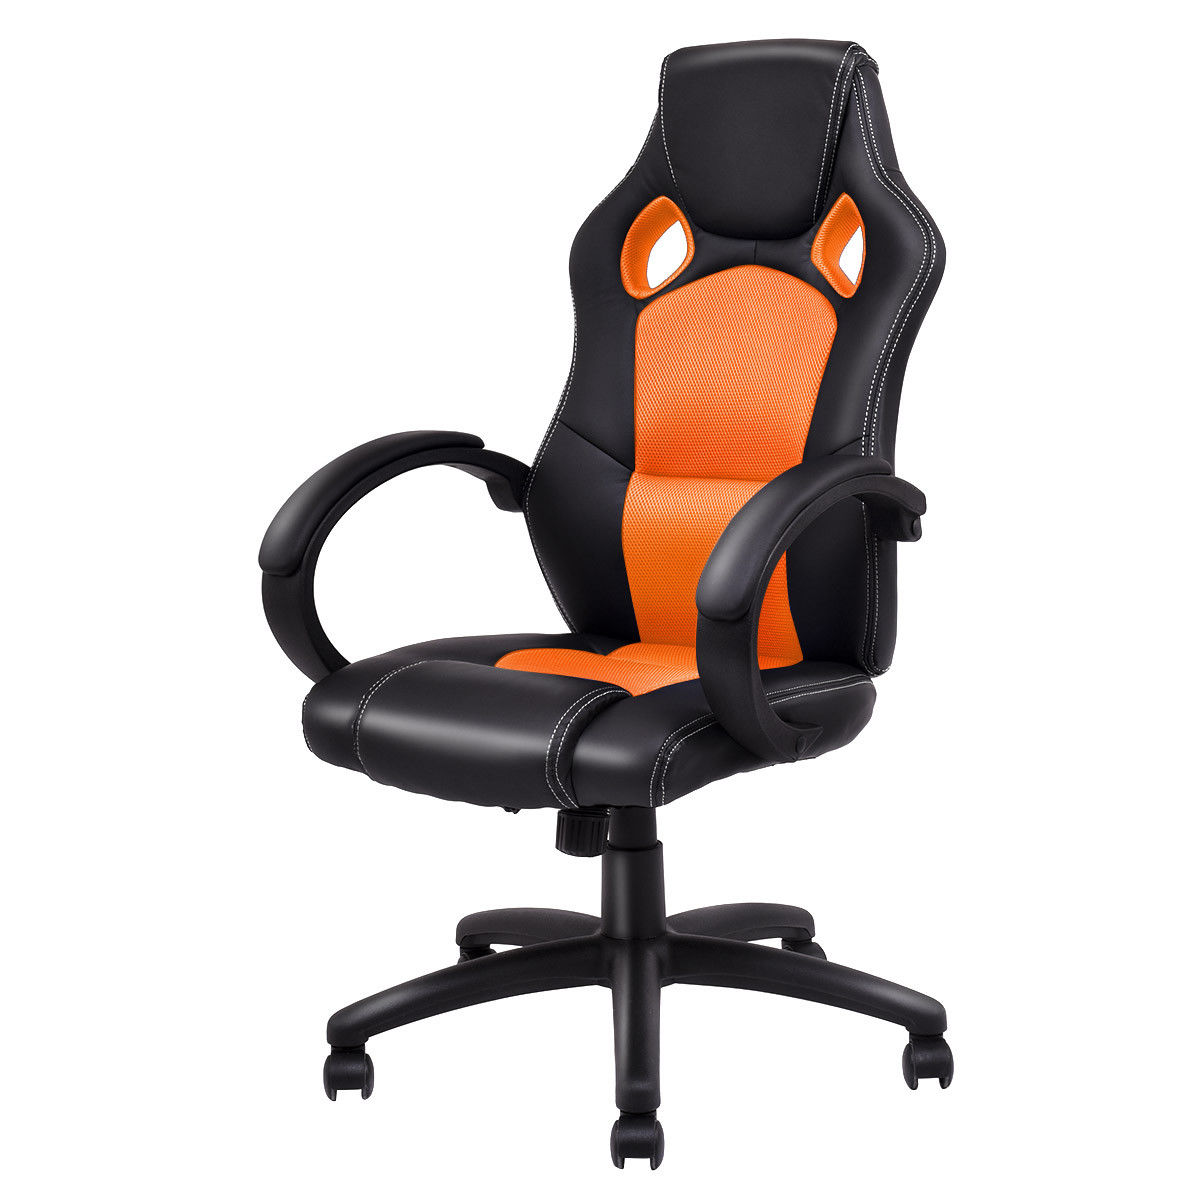 цены Giantex High Back Racing Chair Modern Ergonomic Bucket Seat Office Desk Gaming Chair Swivel Executive Armchairs HW54590OR